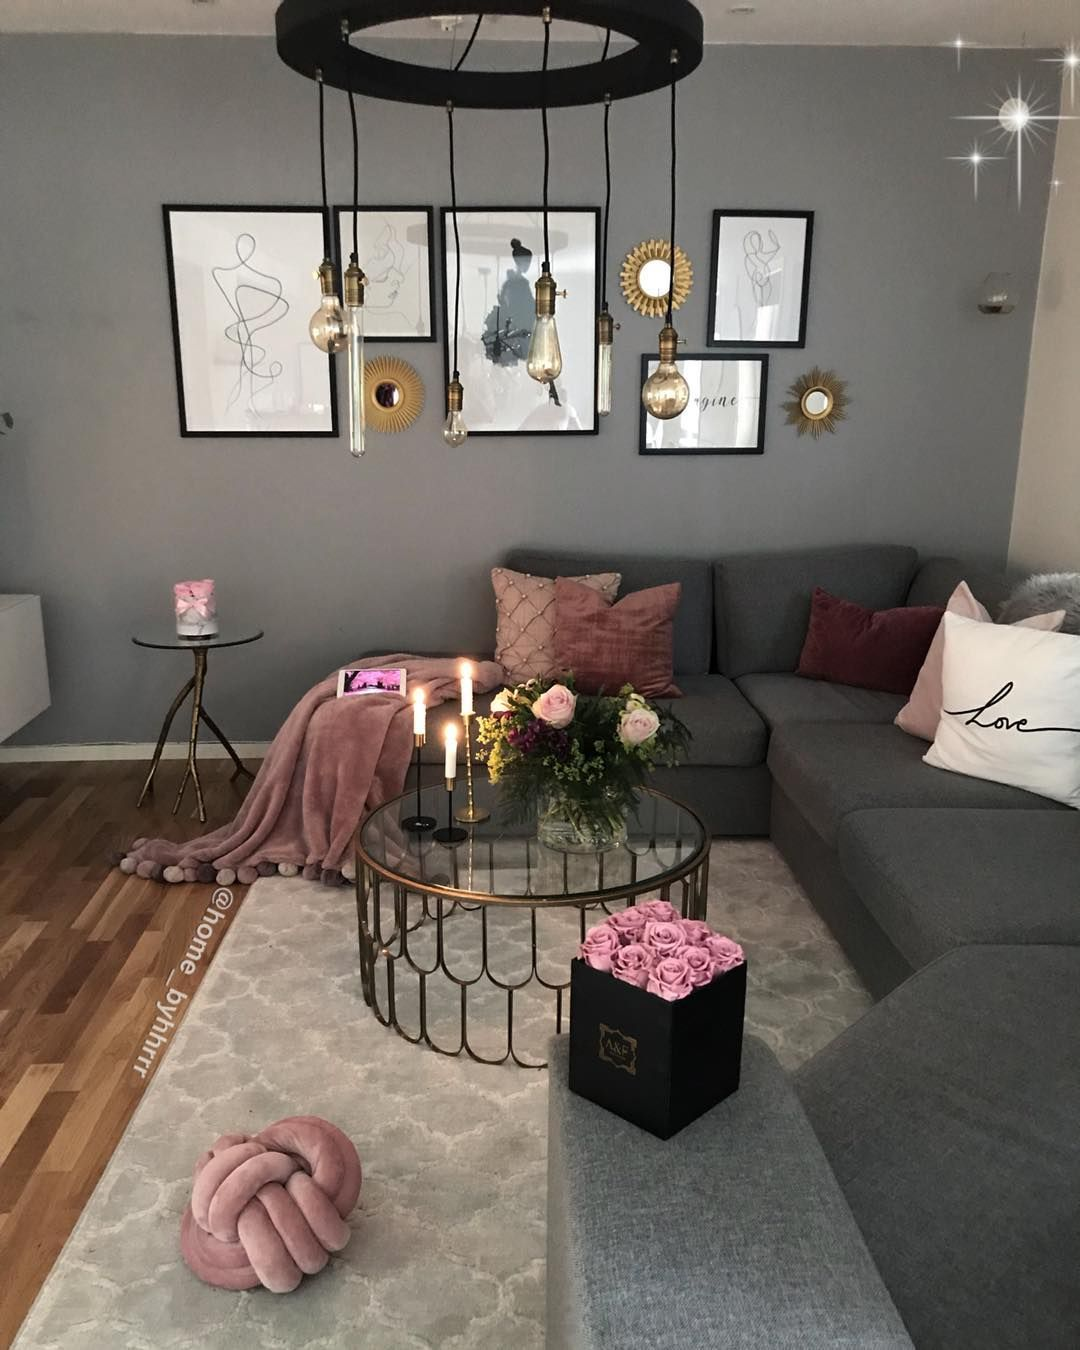 Home Design Color Ideas: Pin By Damilola Olarenwaju On Home Ideas